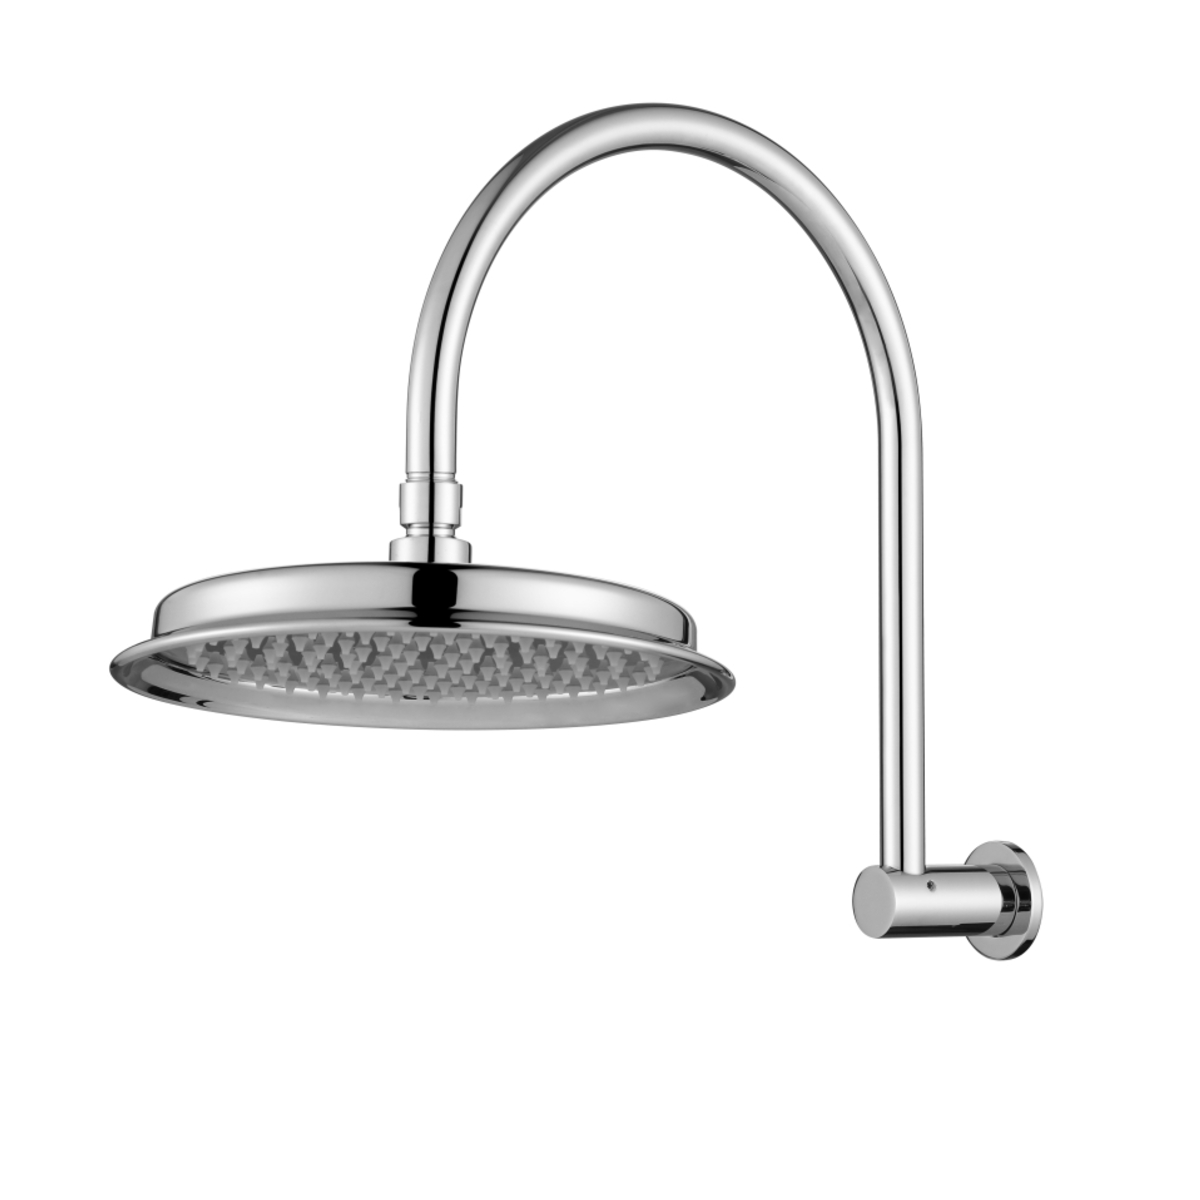 Montpellier Traditional Shower Arm & Head Polished Chrome